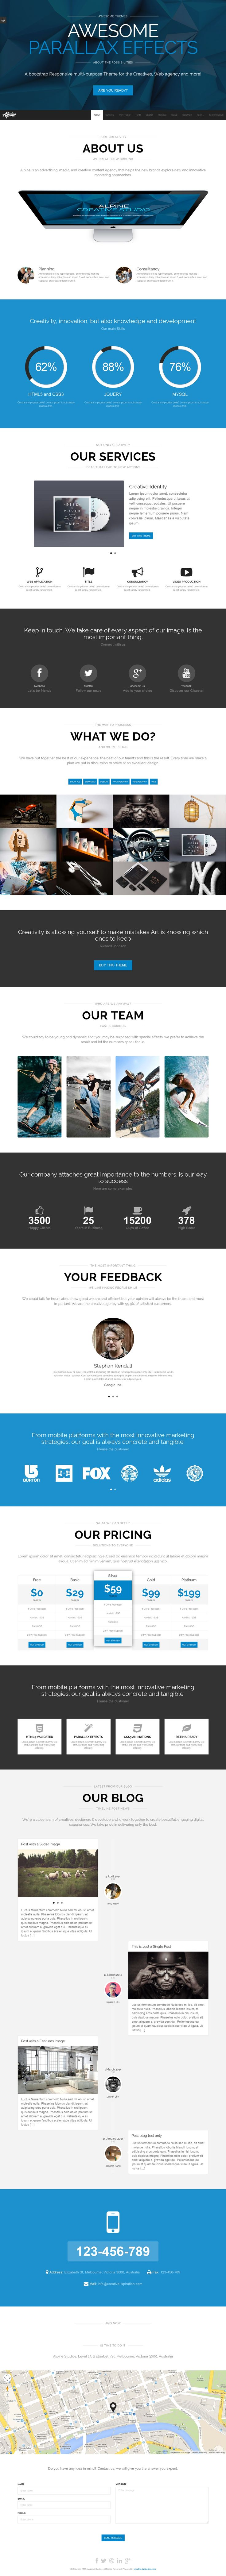 36 Best Best Business Wordpress Themes 2014 Awards Images On